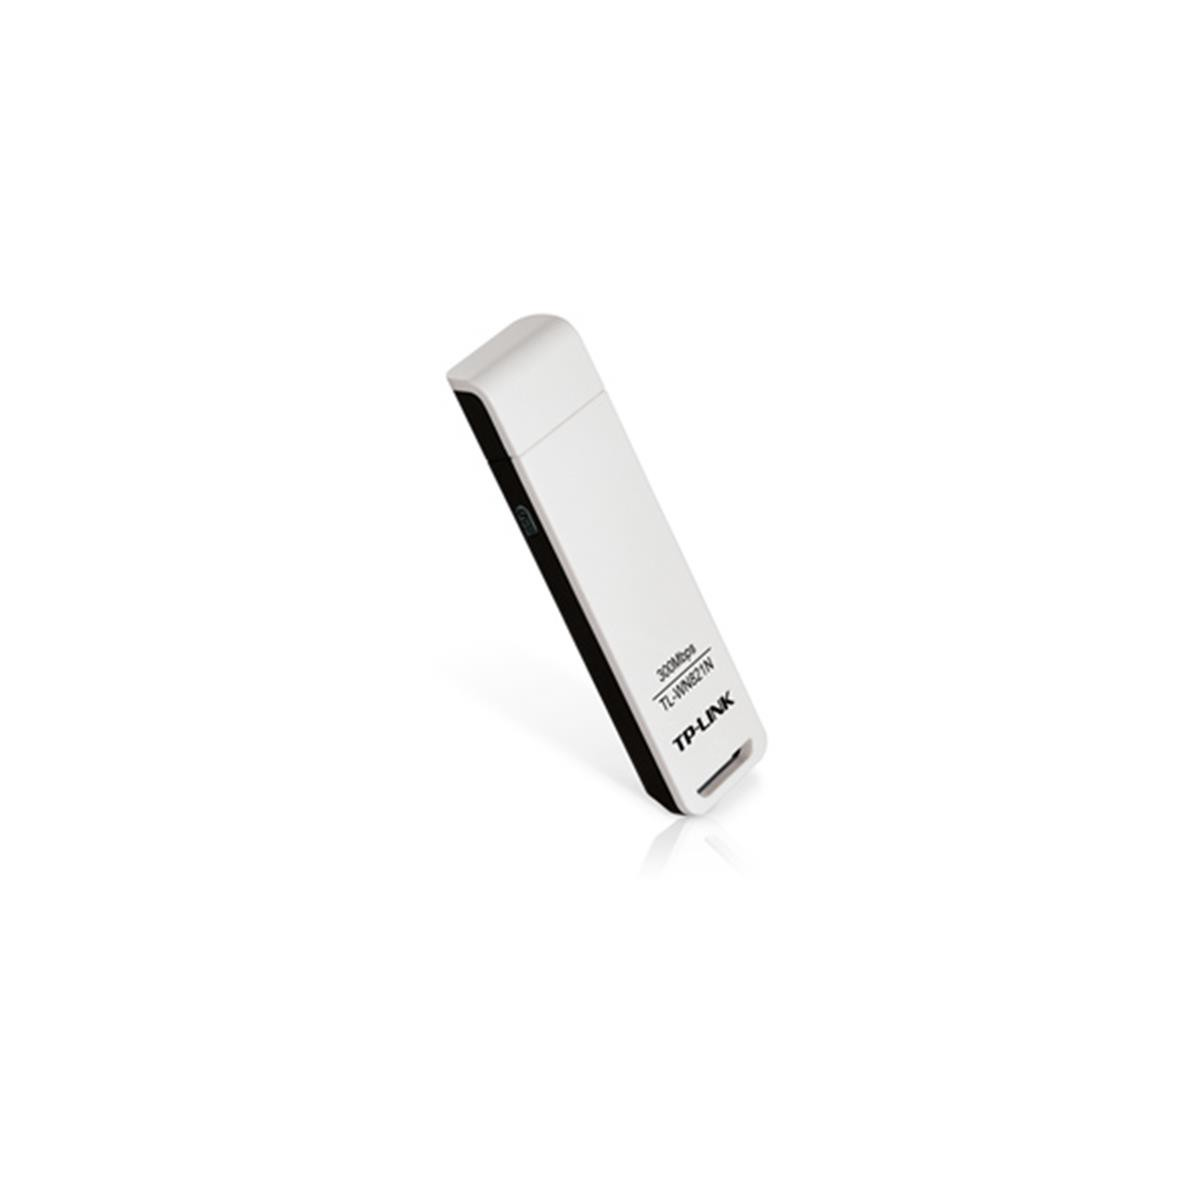 Adaptador TP-LINK Wireless TL-WN821N USB 300MBPS - TPL0418